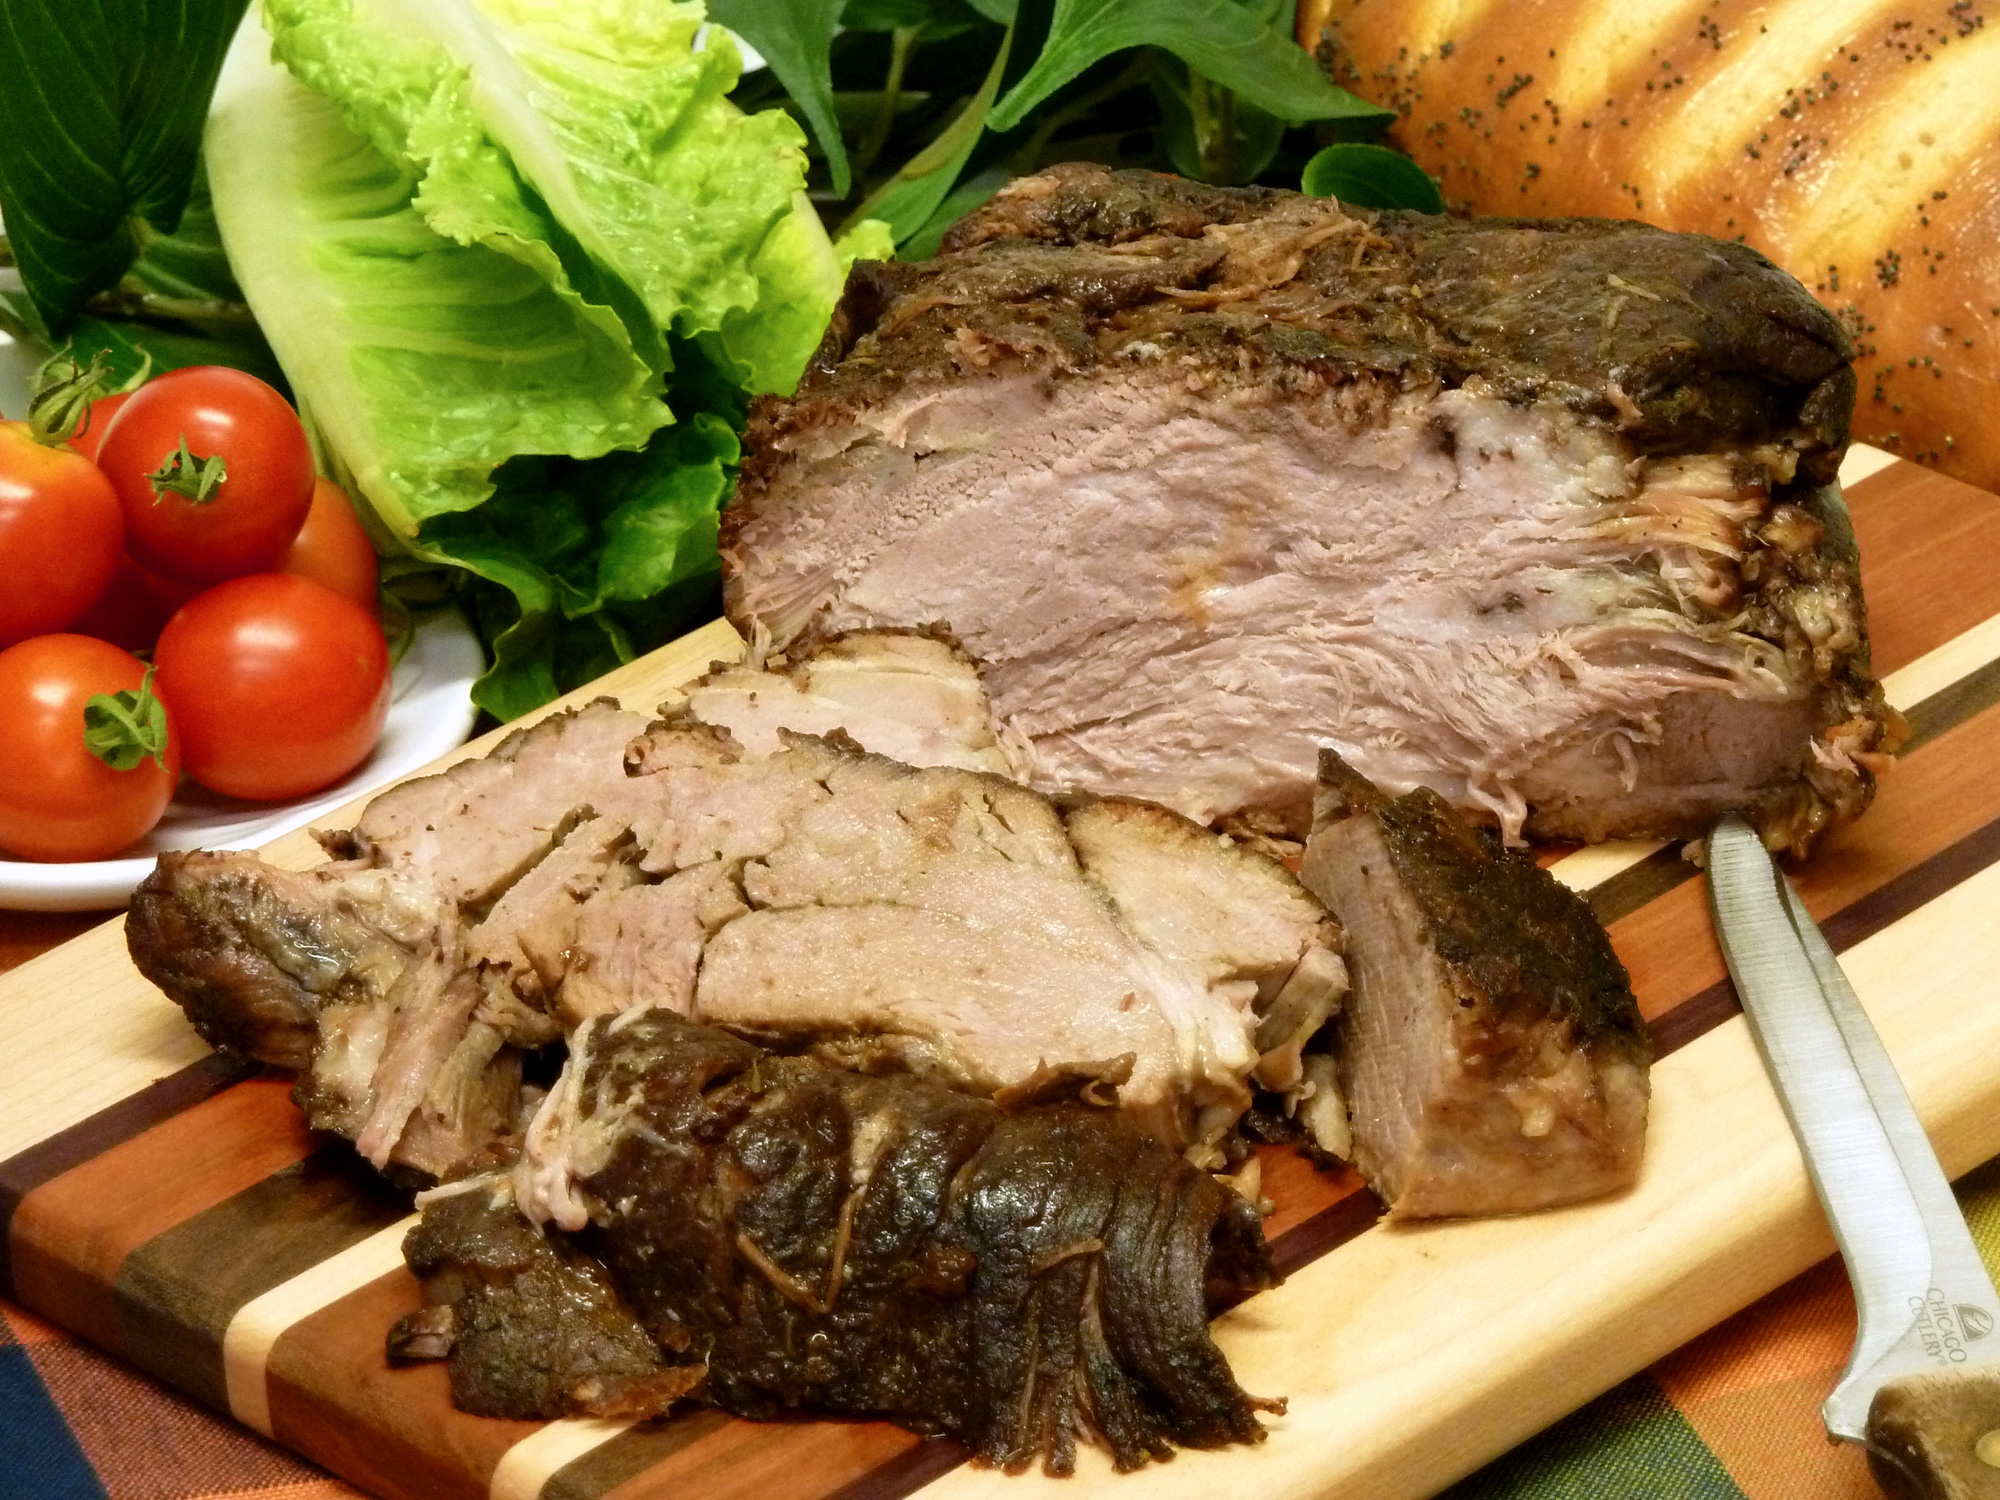 Tender, juicy pork roast incorporates the flavors of the islands.